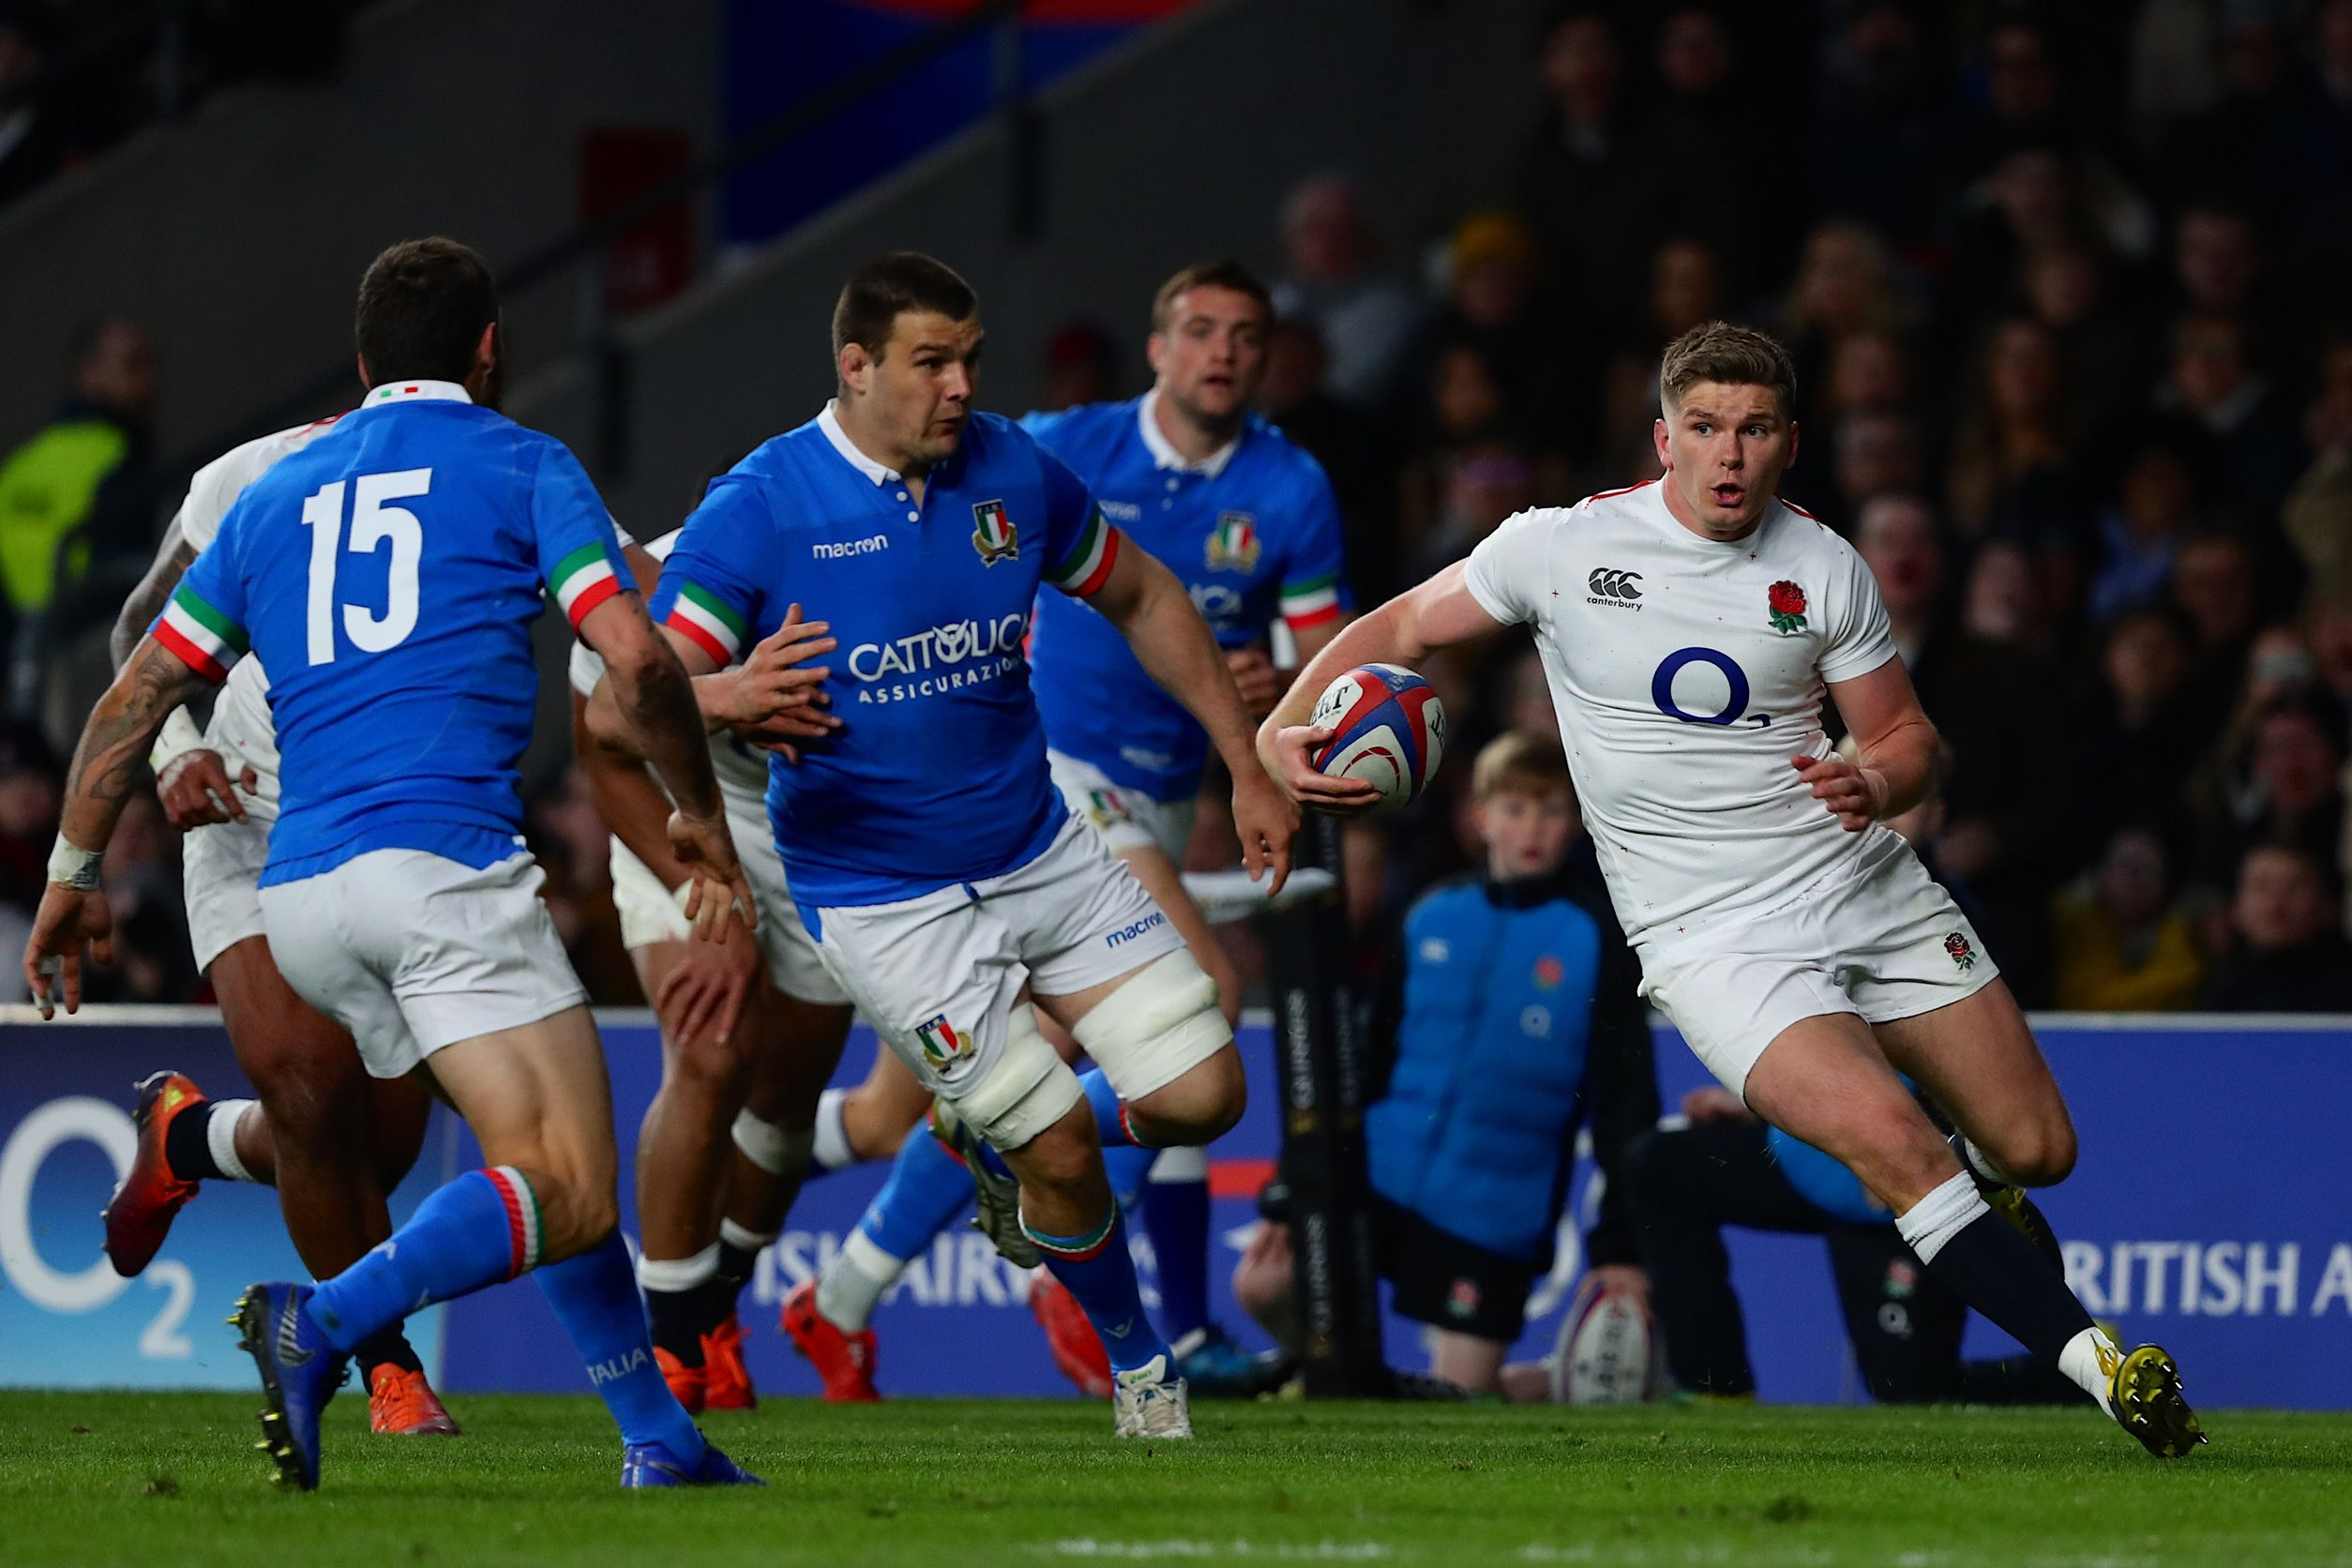 england v italy rugby tips